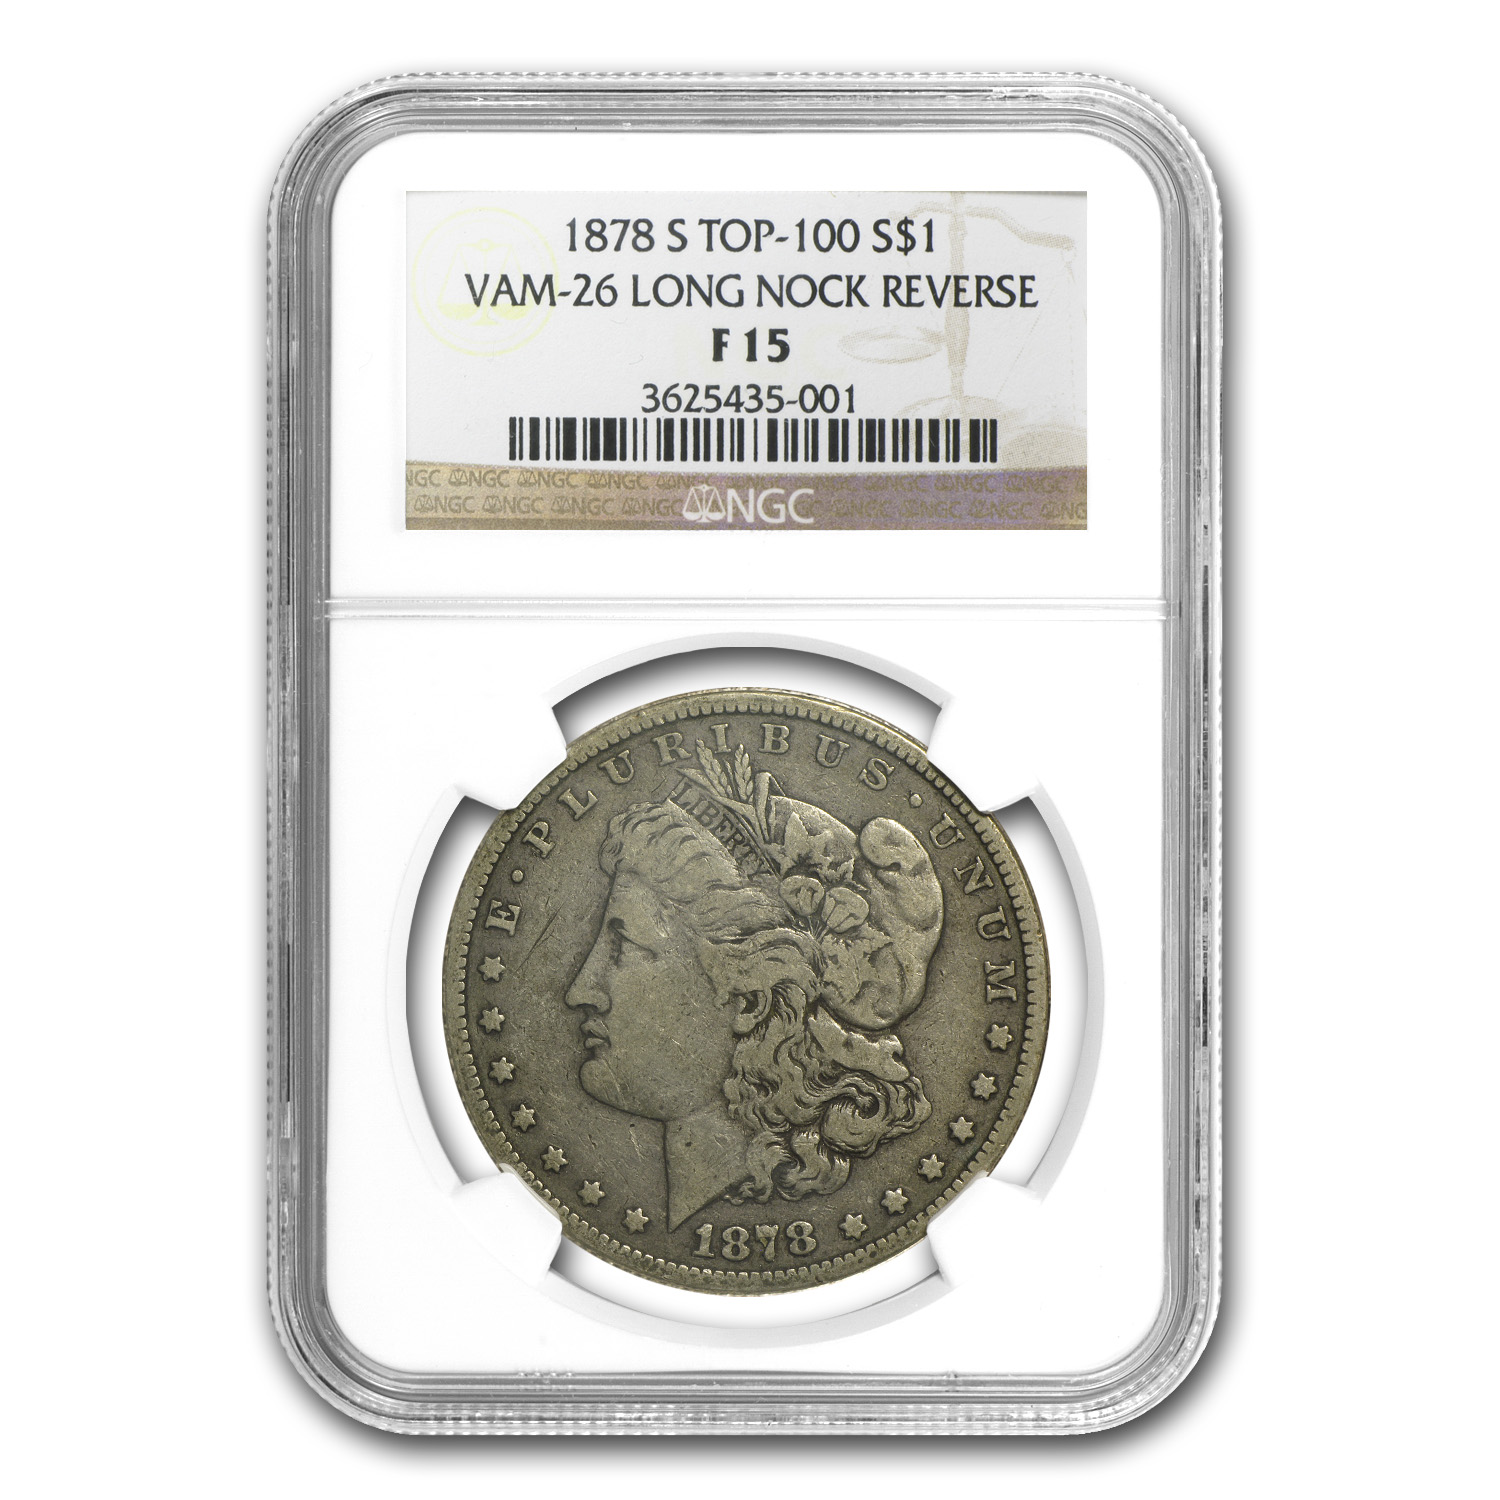 1878-S Morgan Dollar - F-15 NGC VAM-26 Long Nock Rev Top-100